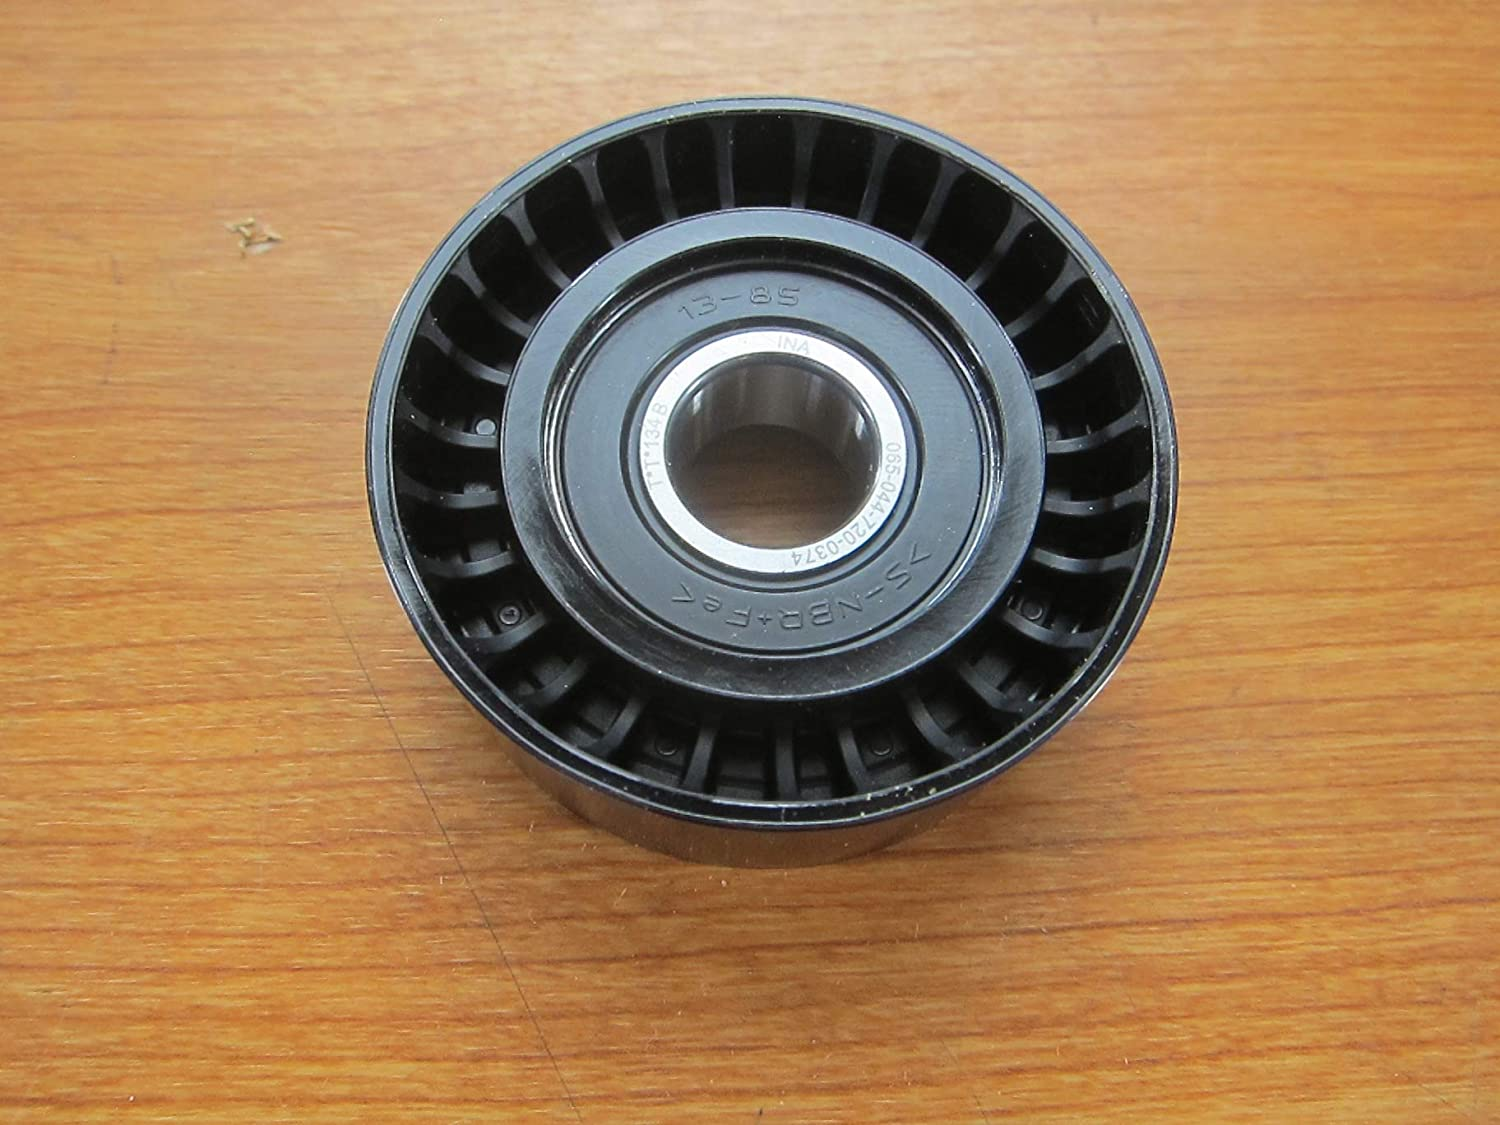 Jeep Ram Smooth Idler Los Angeles Mall Pulley For 3.6L O Mopar Engines New Luxury goods 3.0L